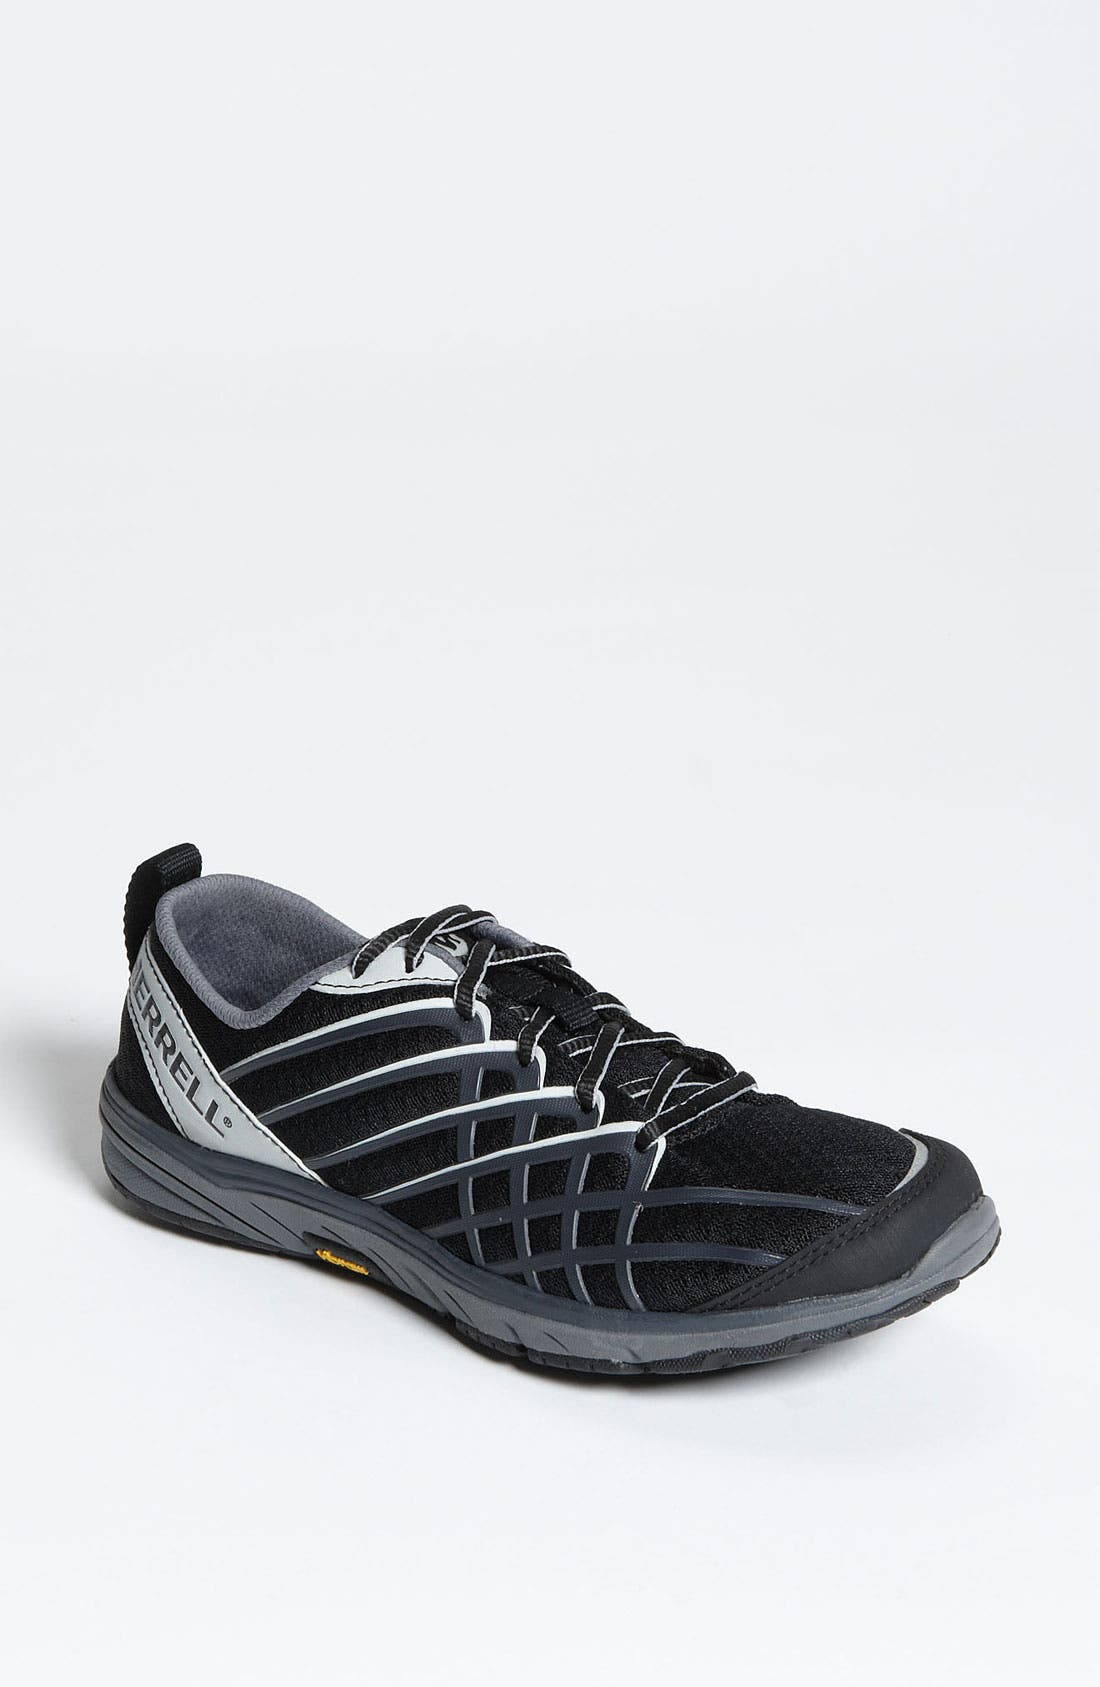 Main Image - Merrell 'Bare Access Arc 2' Running Shoe (Women)